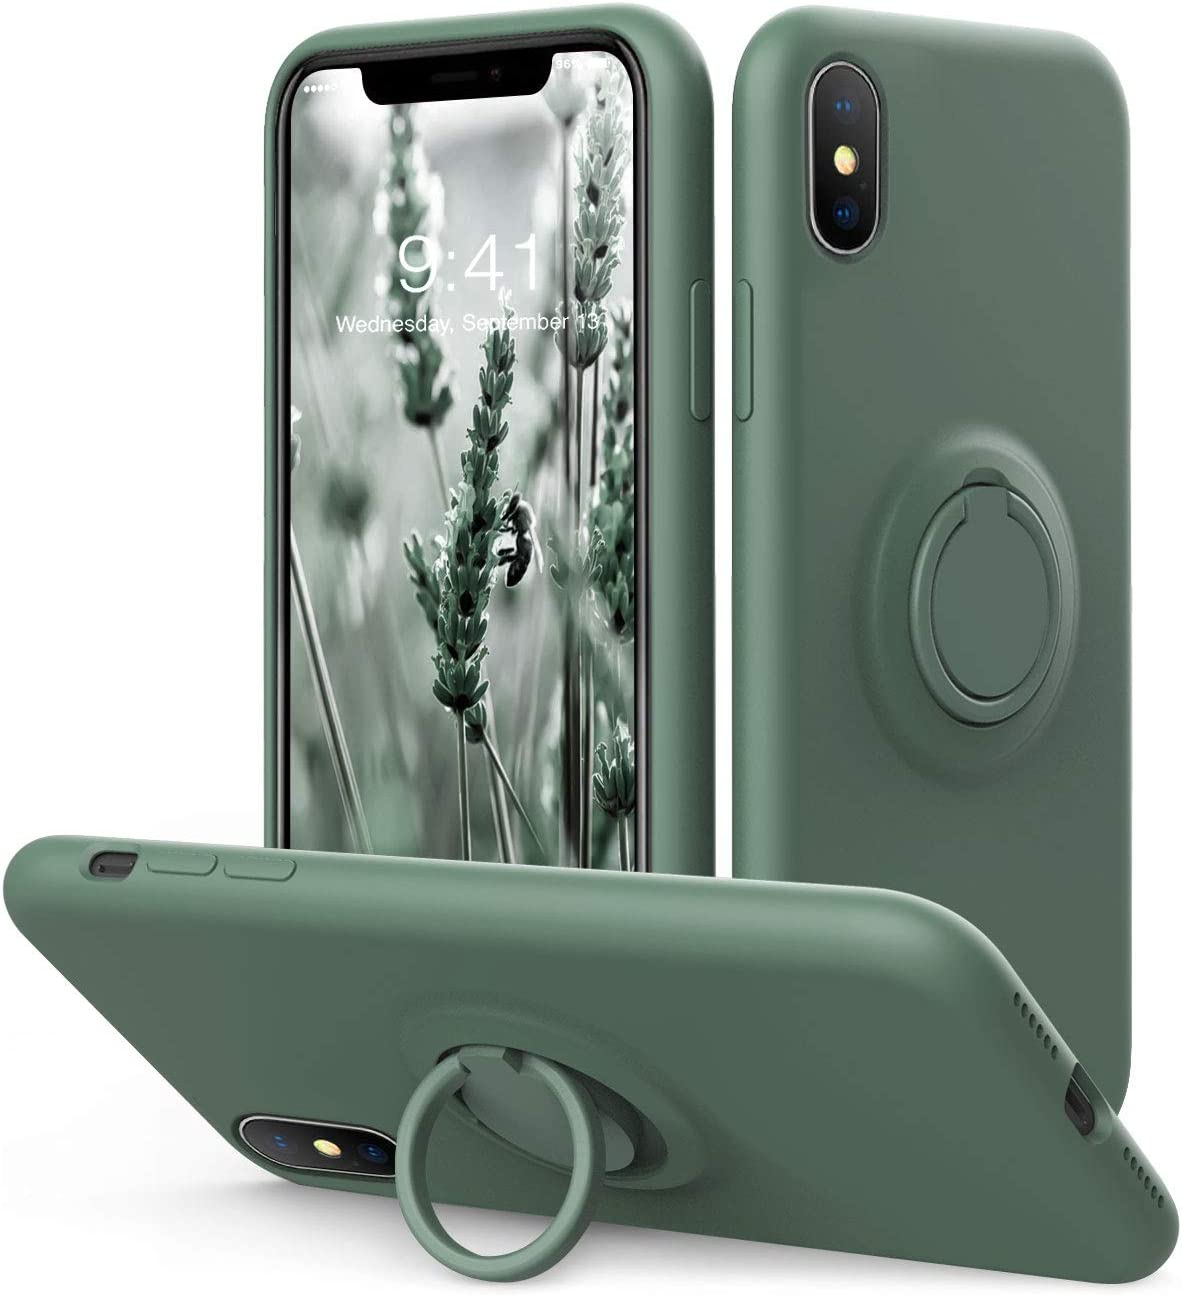 Vooii iPhone Xs/X Case Kickstand | Baby Grade Liquid Silicone | 10ft Drop Tested Protective, Microfiber Lining Shockproof Full-Body Cover Case for iPhone Xs/X (Pine Green)